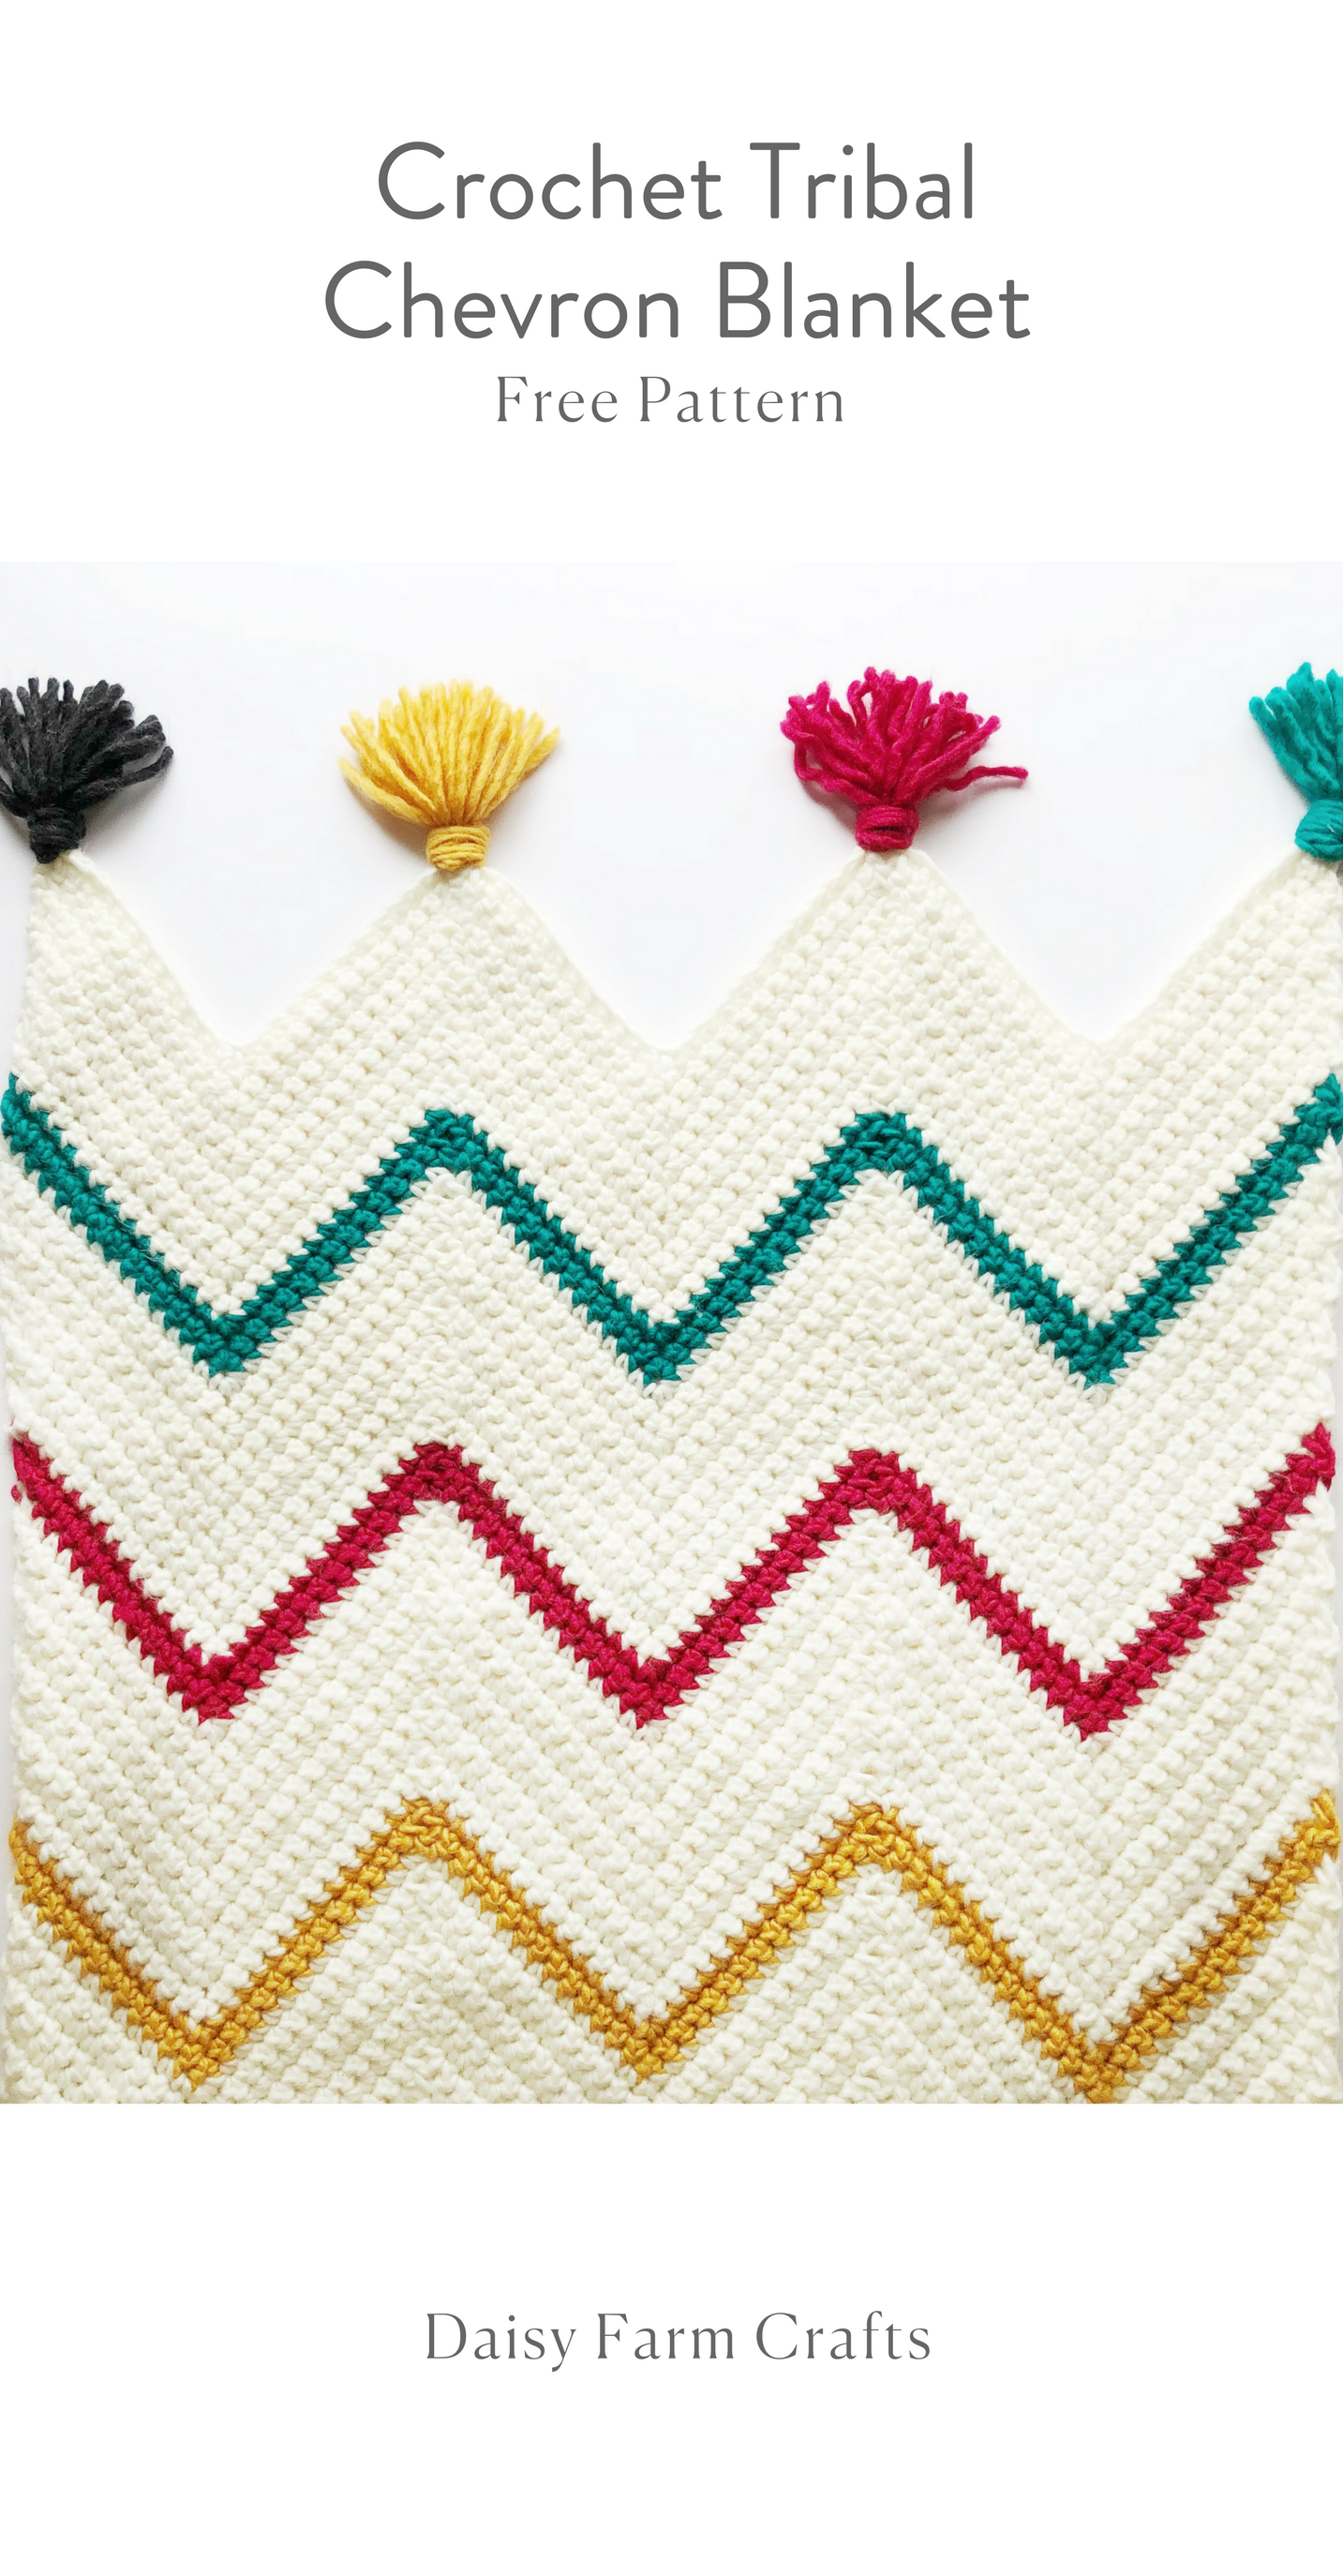 Free Pattern  Crochet Tribal Chevron Blanket